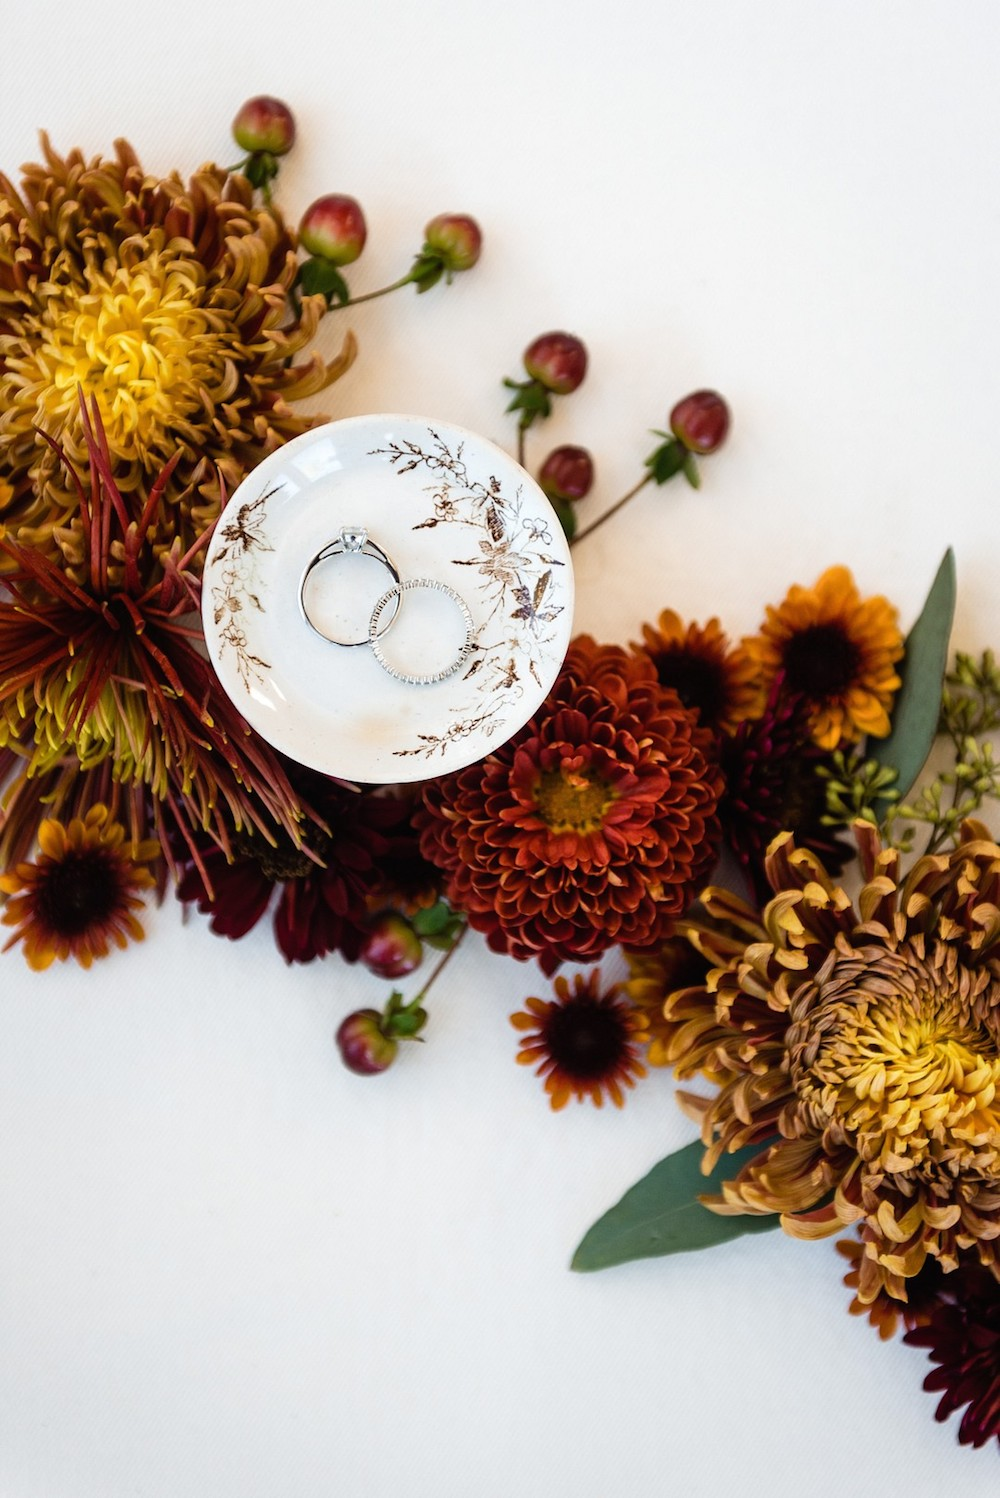 rings in ring dish with flowers in a flat lay